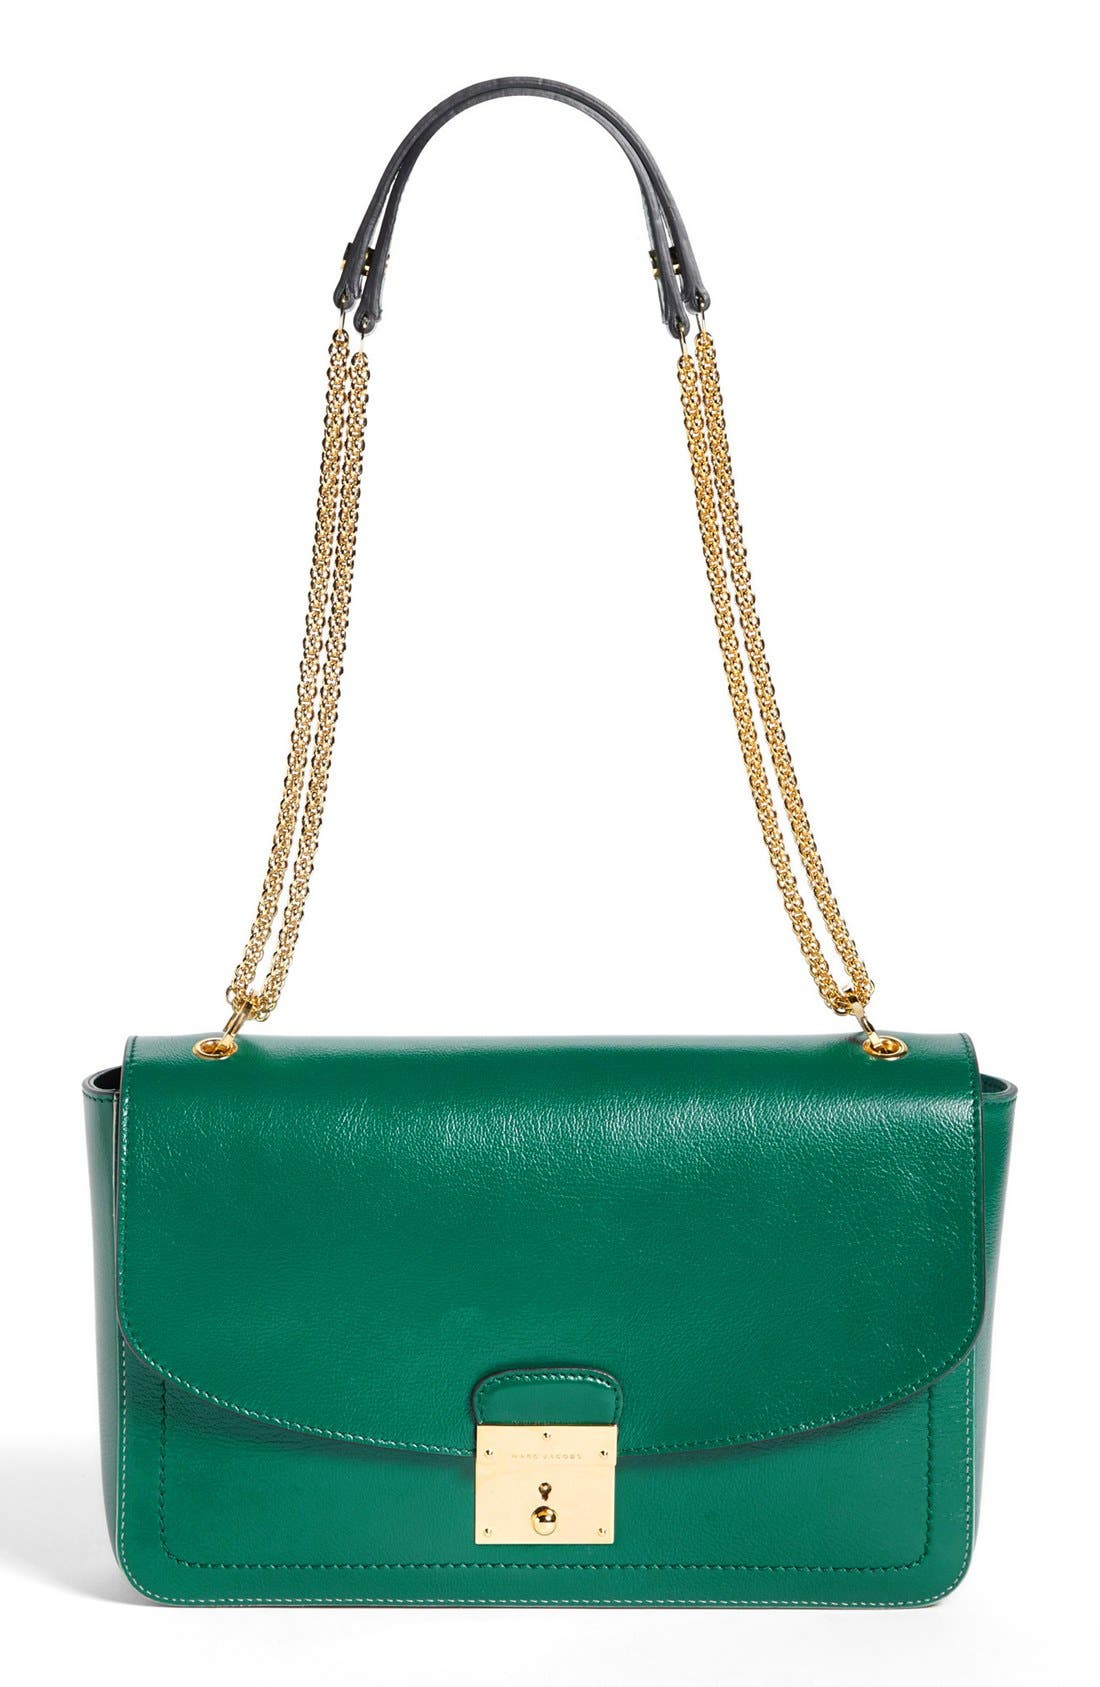 Alternate Image 1 Selected - MARC JACOBS '1984 - Polly' Leather Shoulder Bag